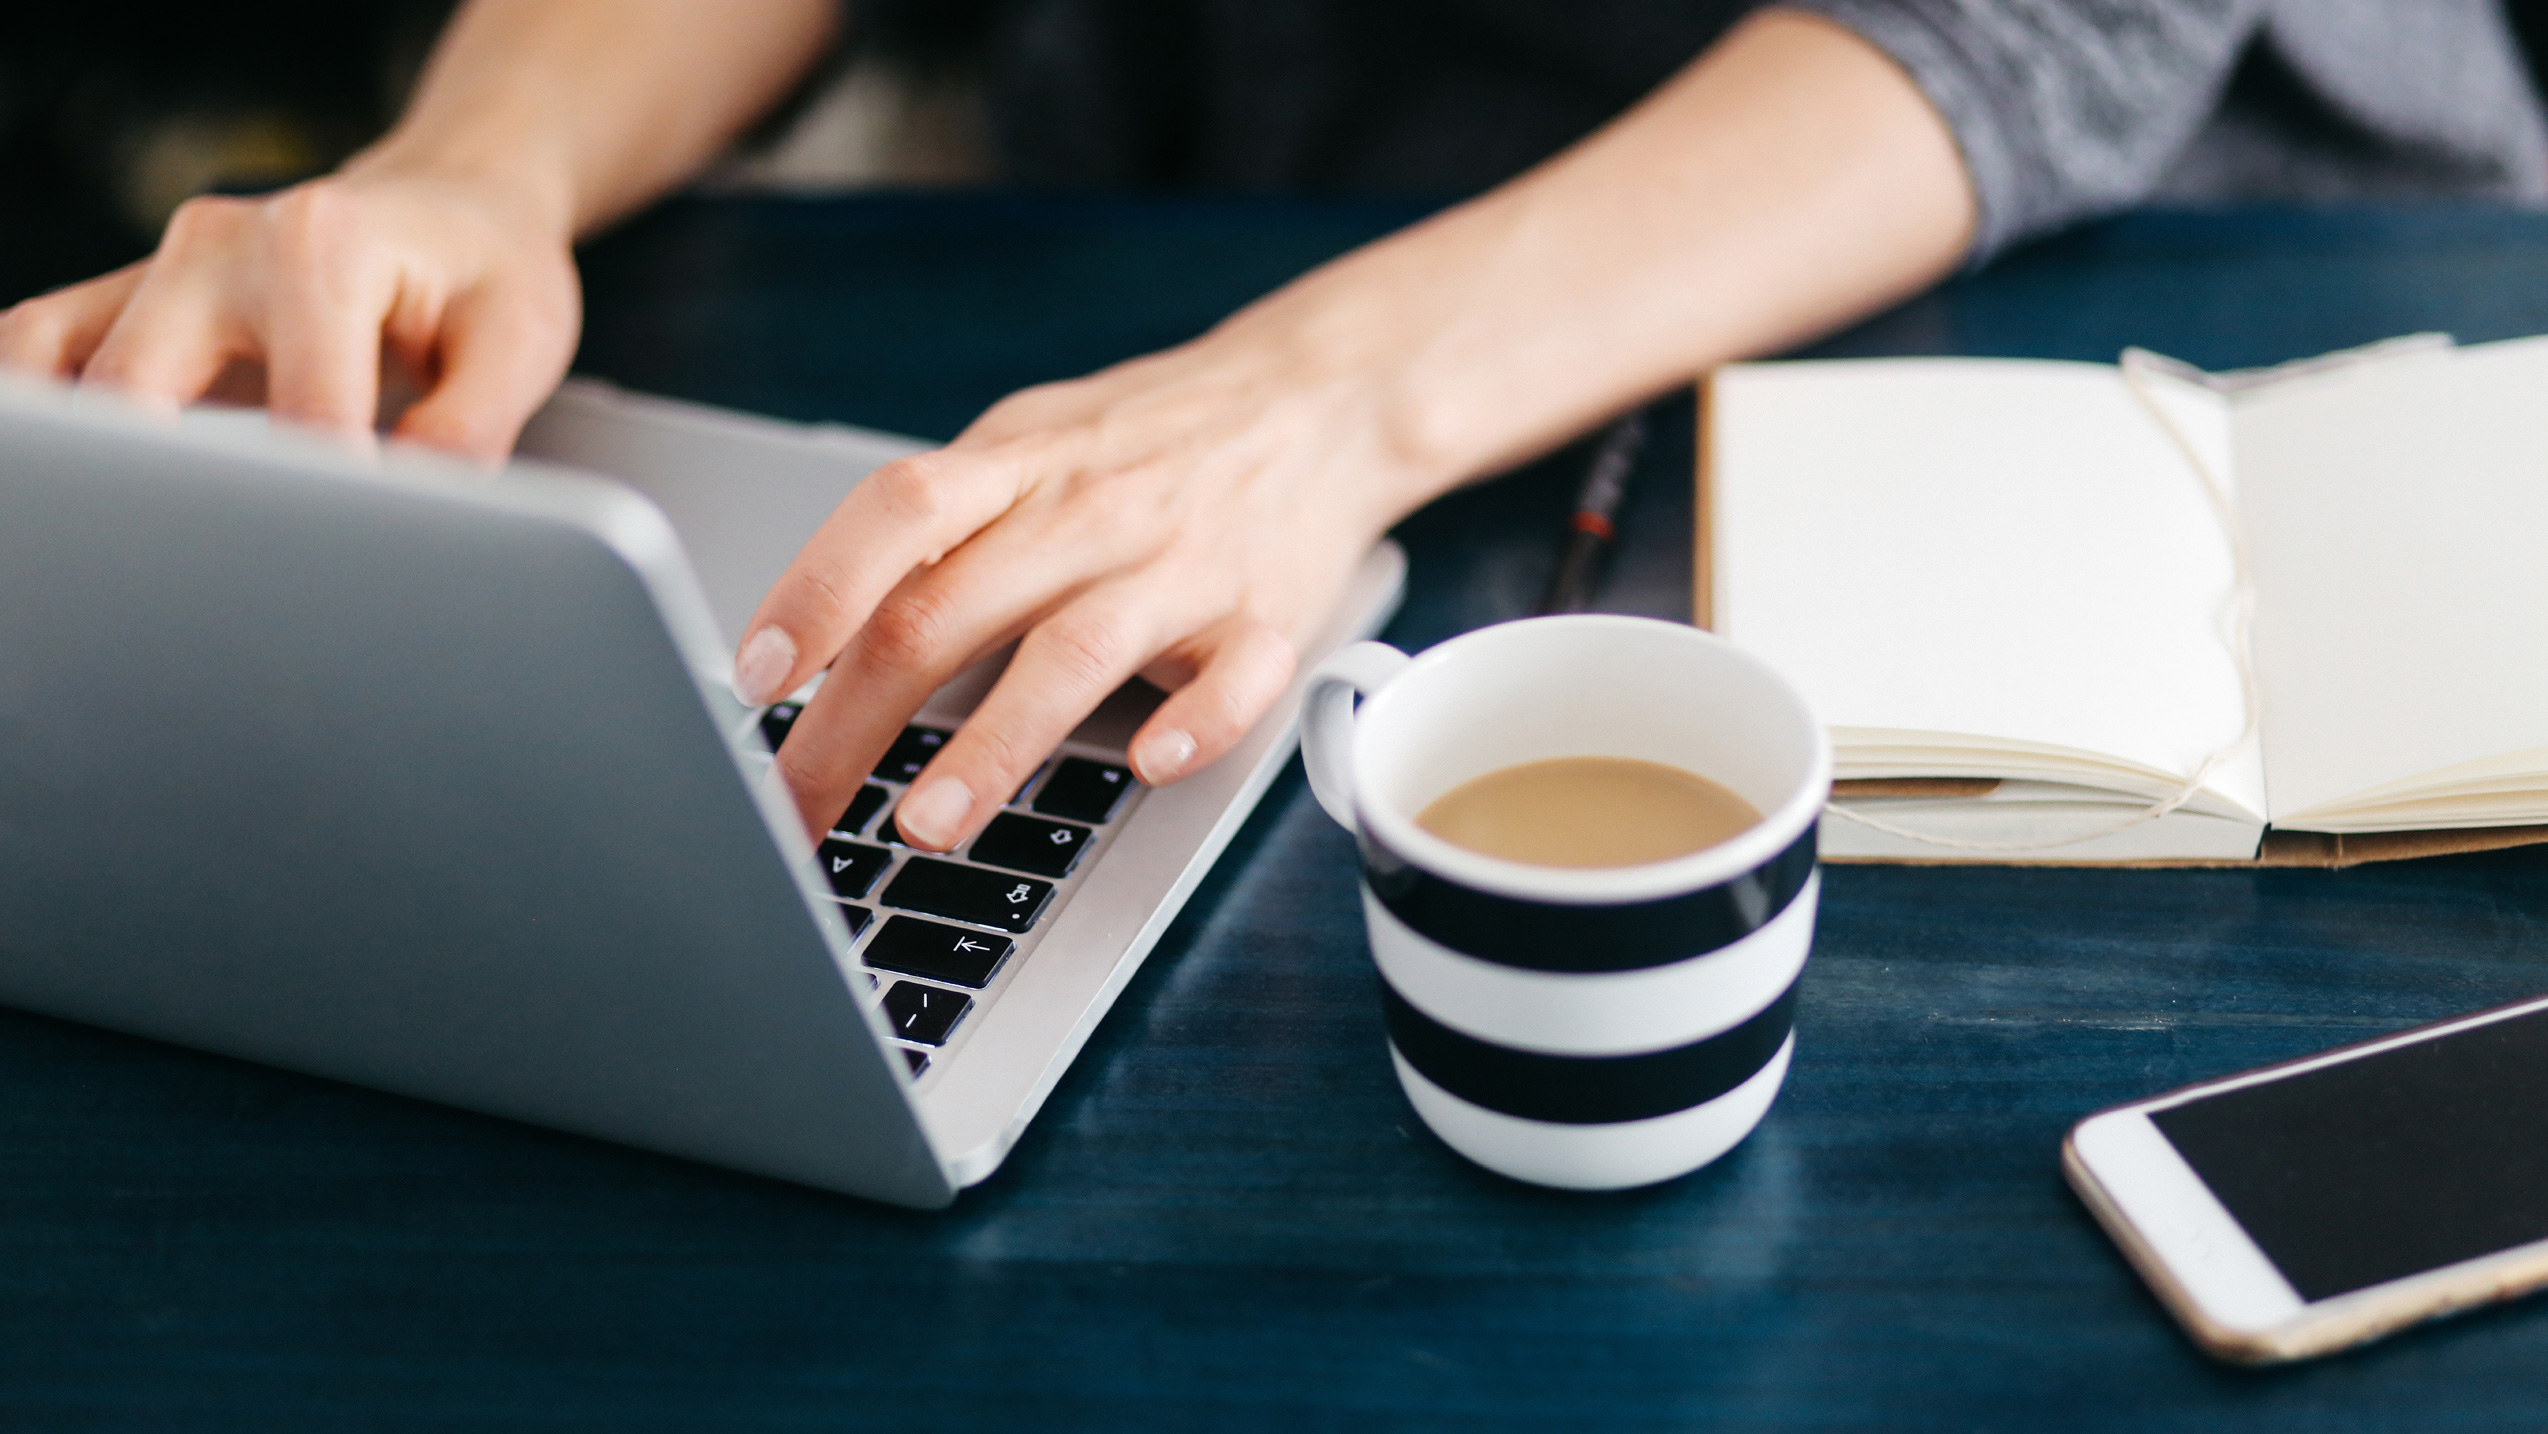 Woman working at a desk with a laptop and a cup of coffee